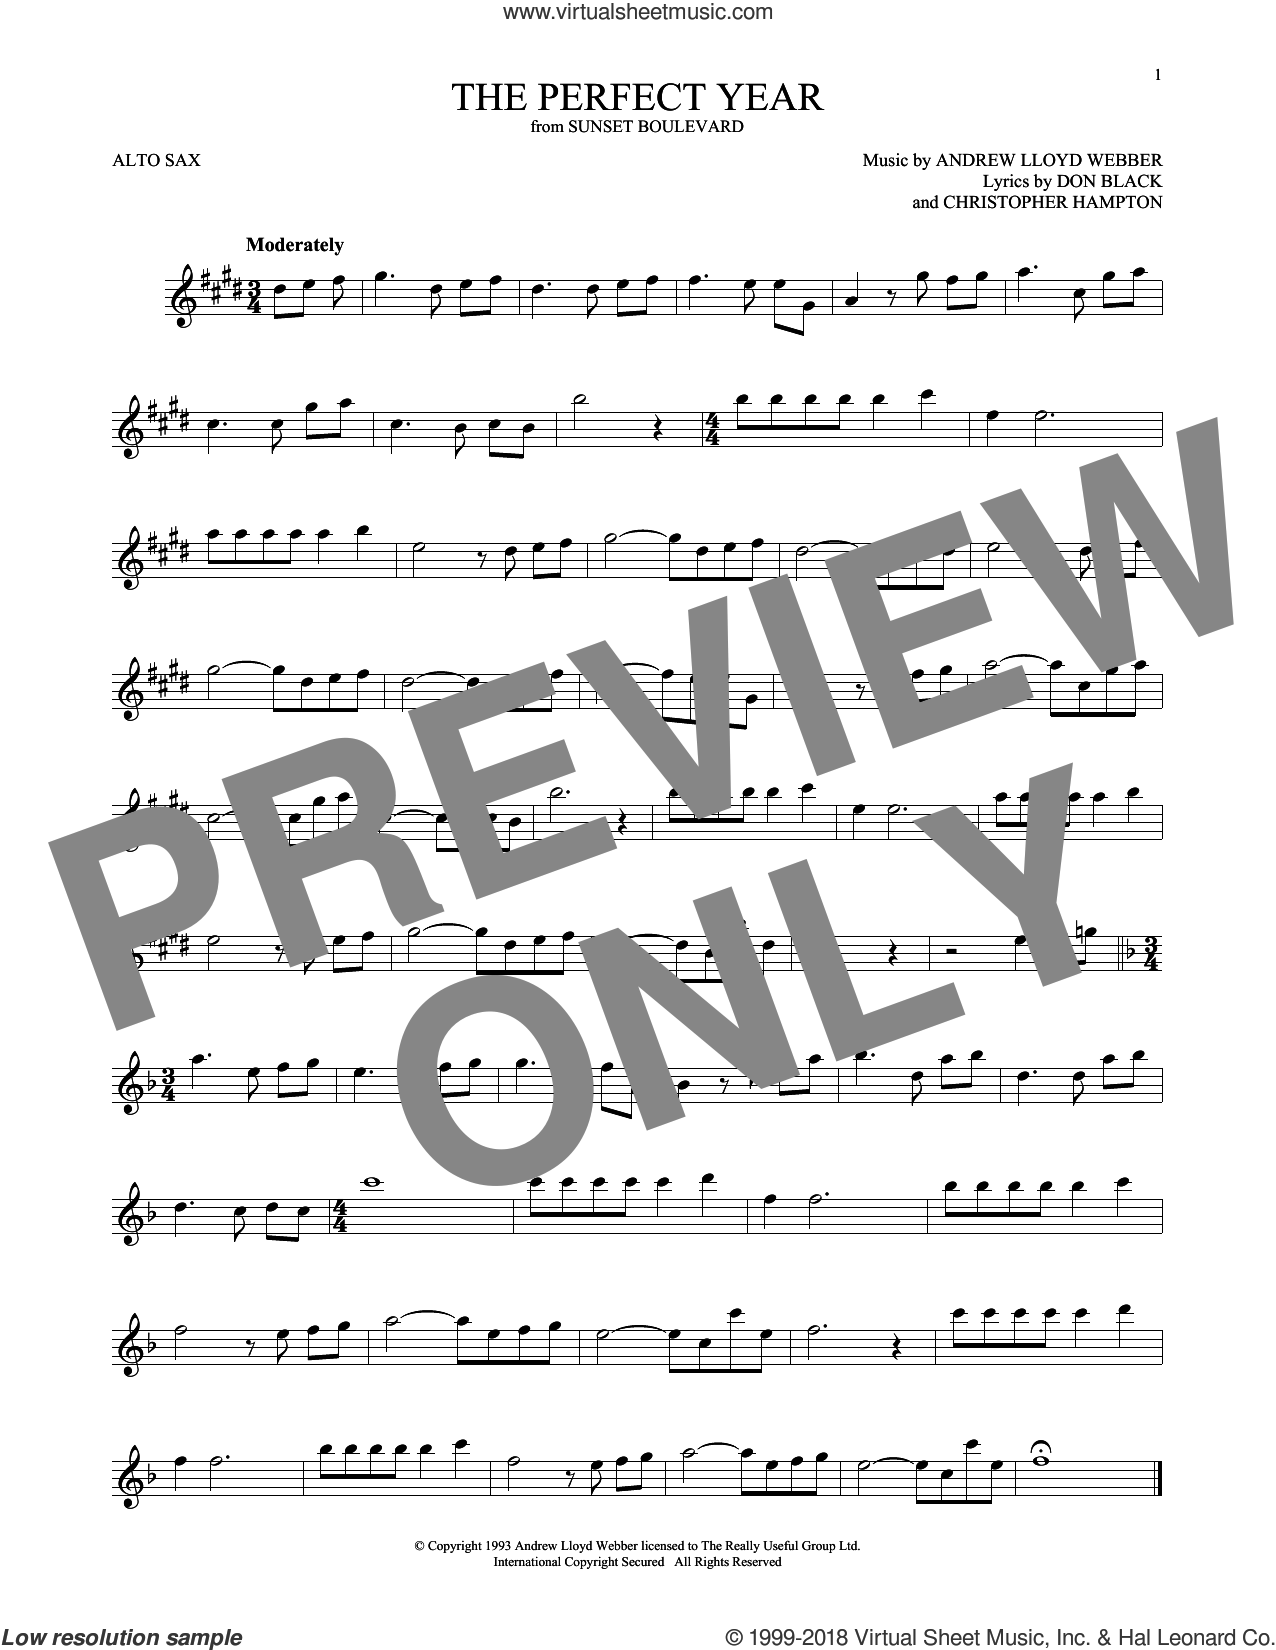 The Perfect Year (from Sunset Boulevard) sheet music for alto saxophone solo by Andrew Lloyd Webber, Christopher Hampton and Don Black, intermediate skill level